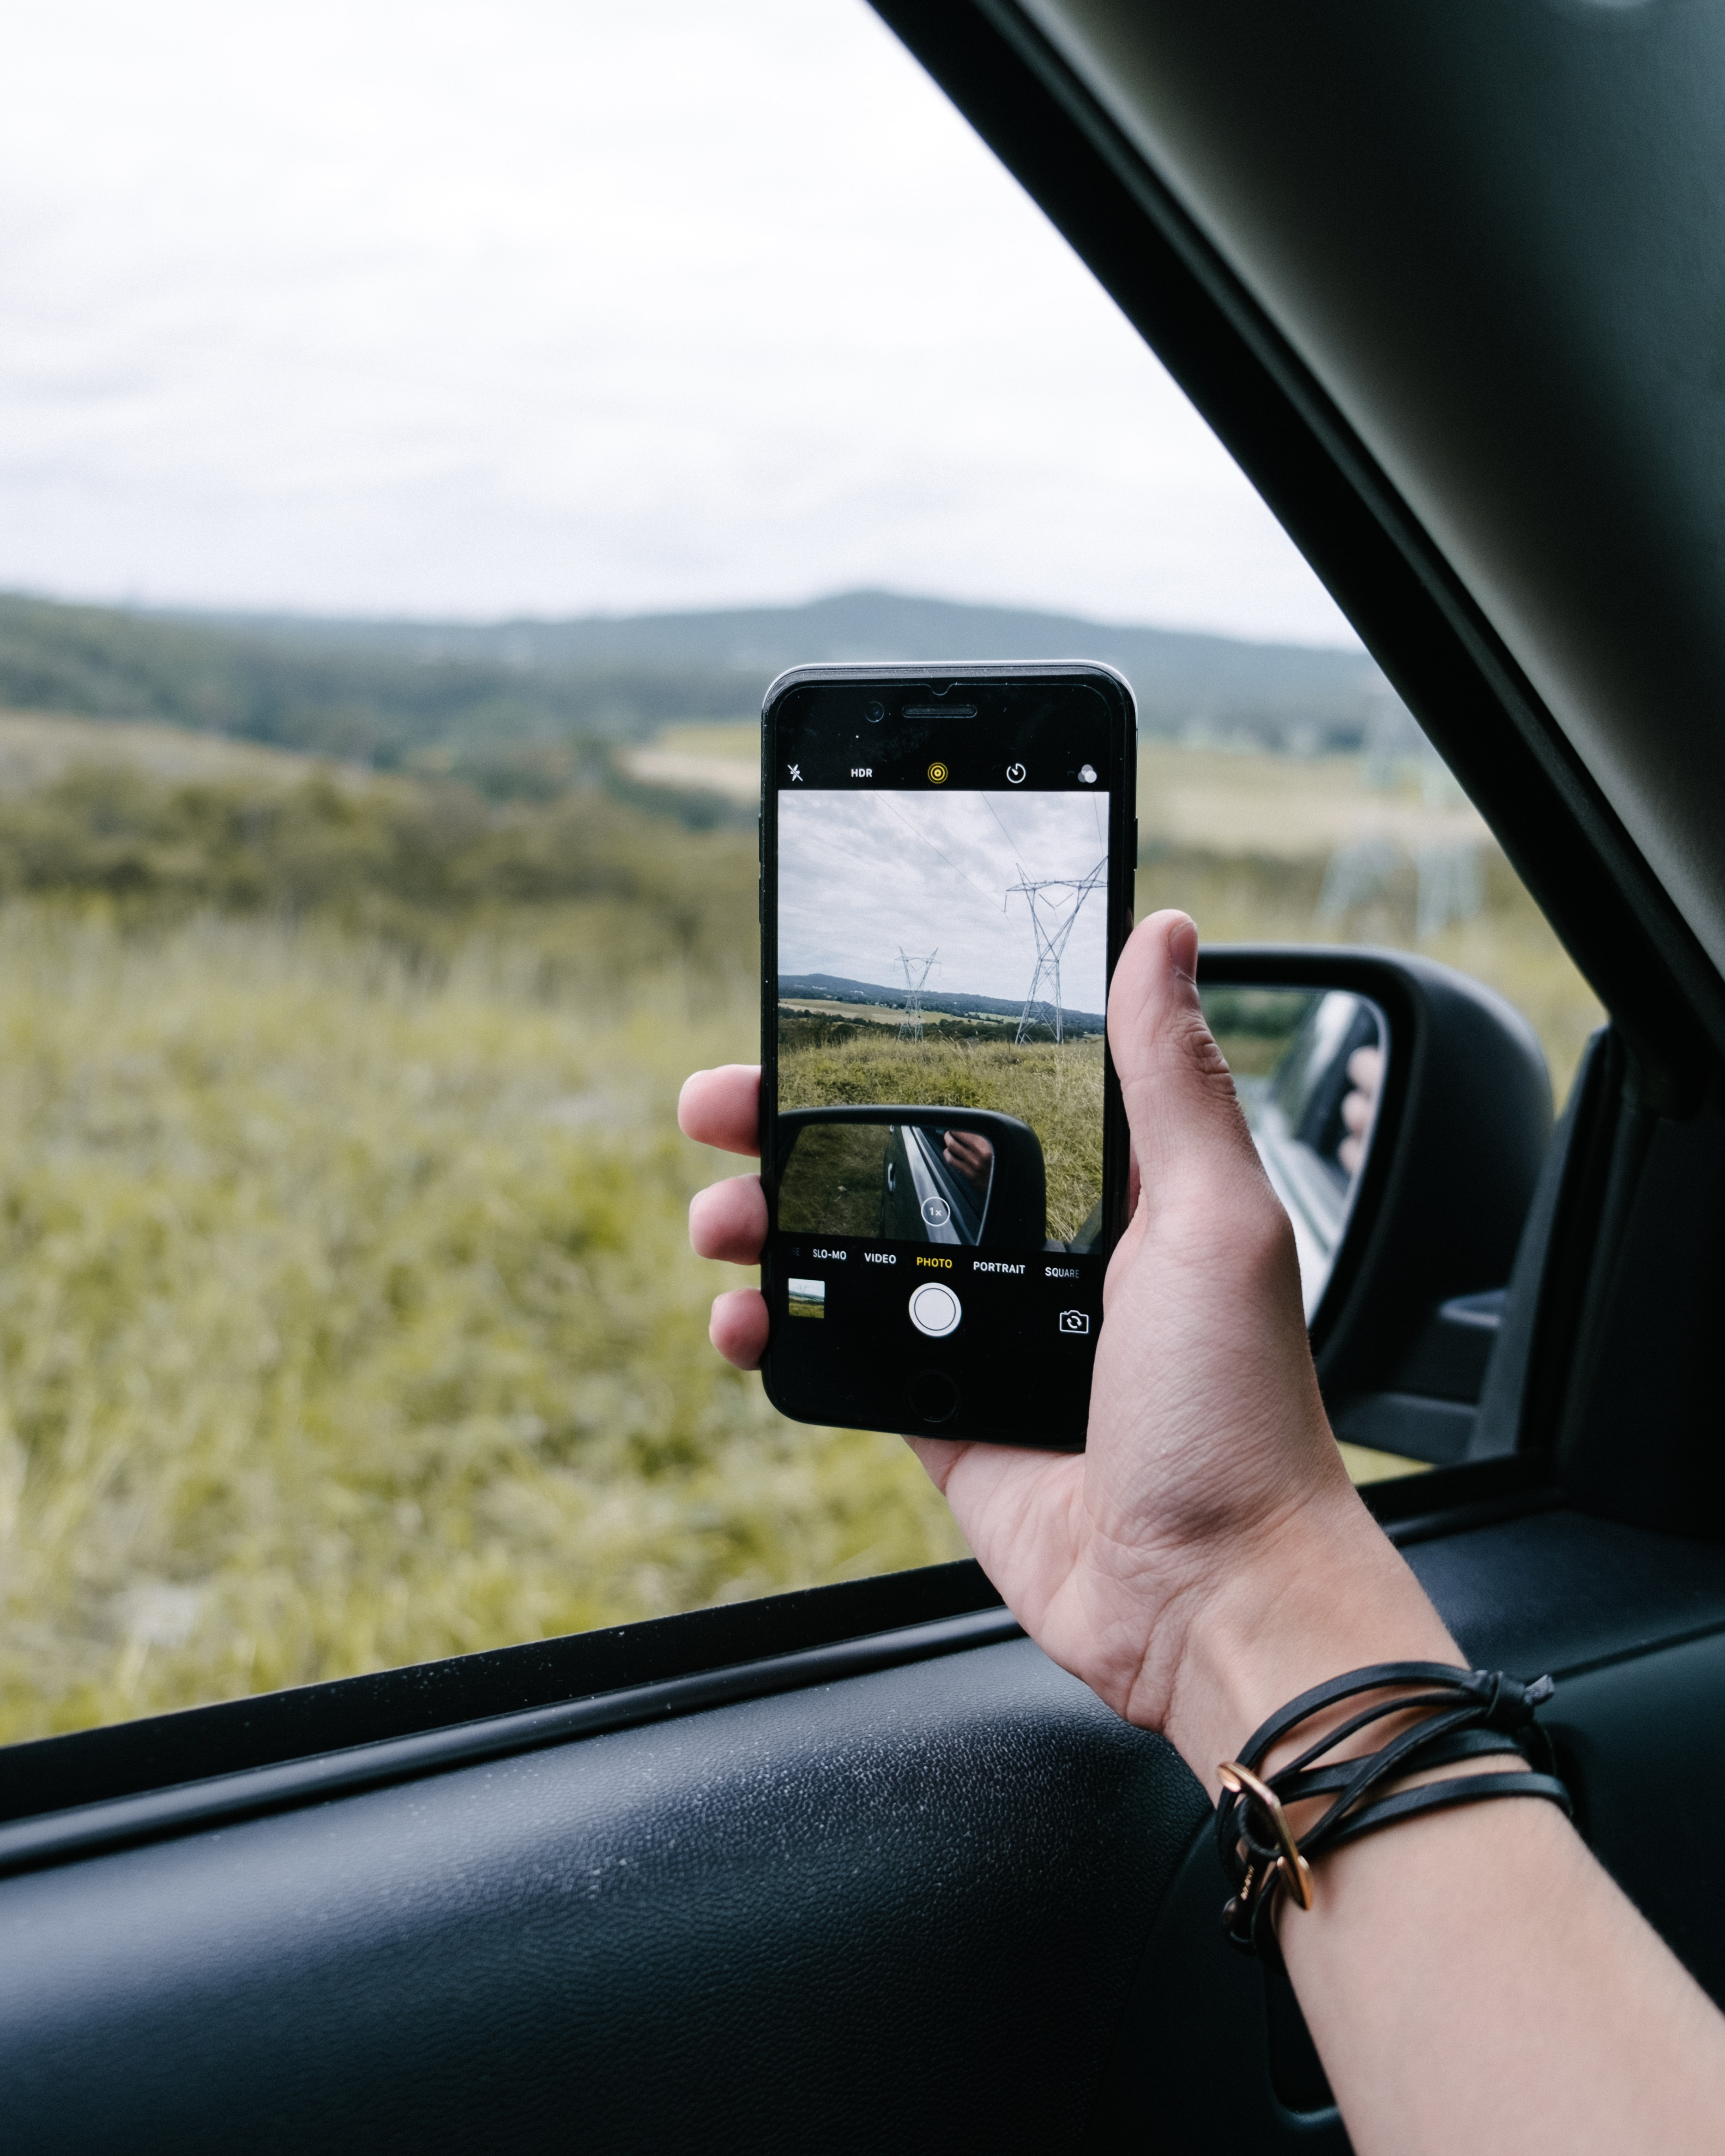 A person taking a picture out their car window with their smartphone.